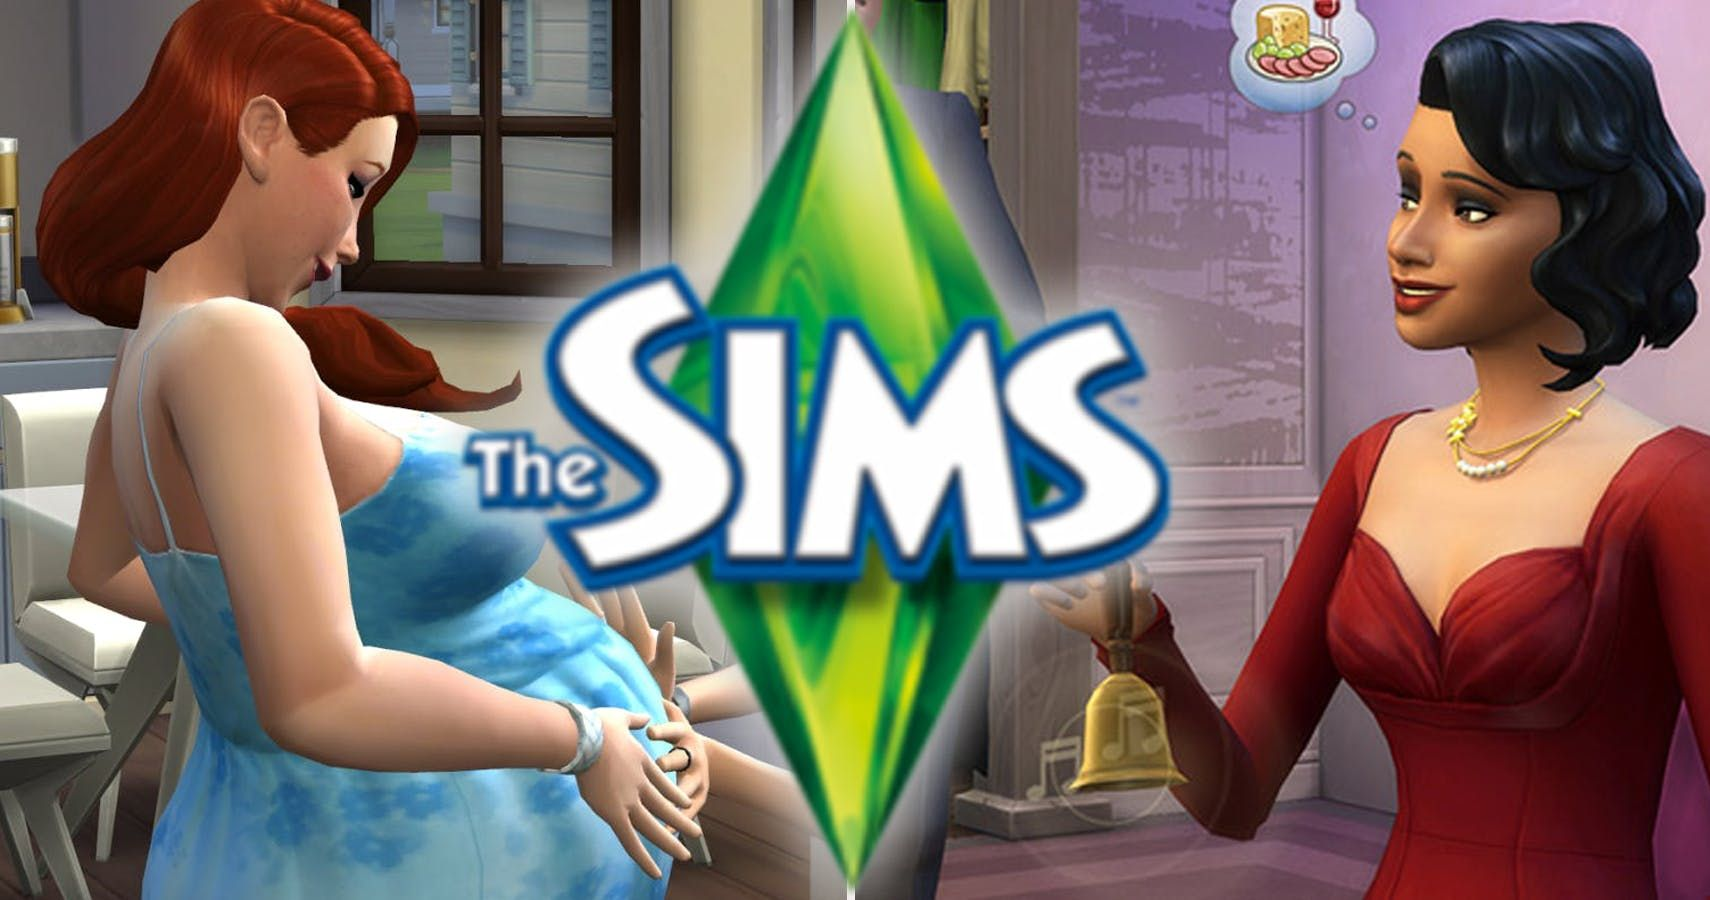 Sims 3 Vs Sims 4: 5 Things Each Game Does Better | TheGamer